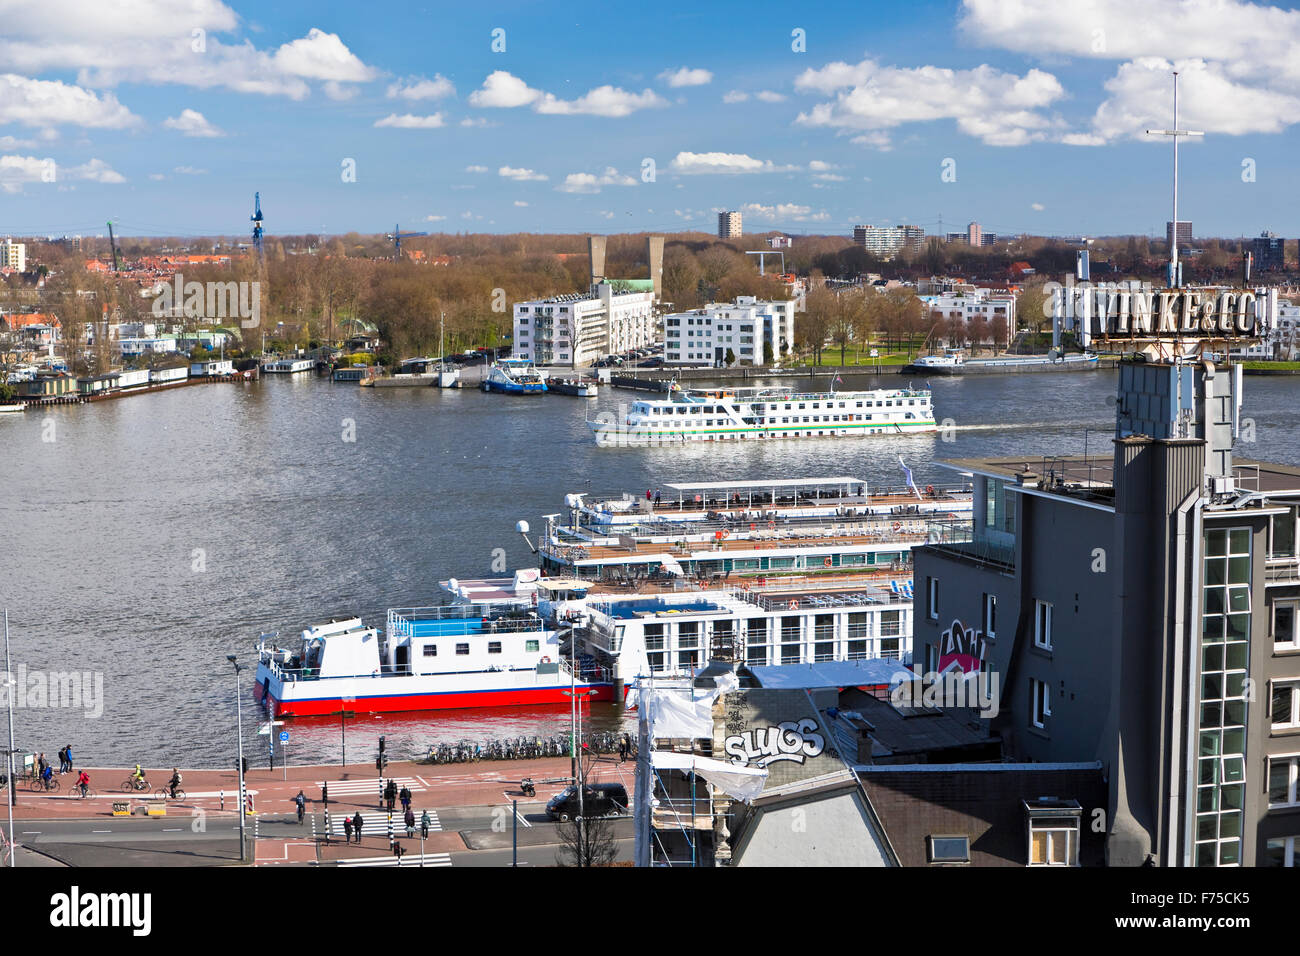 Image of ferry boats on the river IJ Amsterdam viewed from the rooftop of the Doubletree Hotel - Stock Image